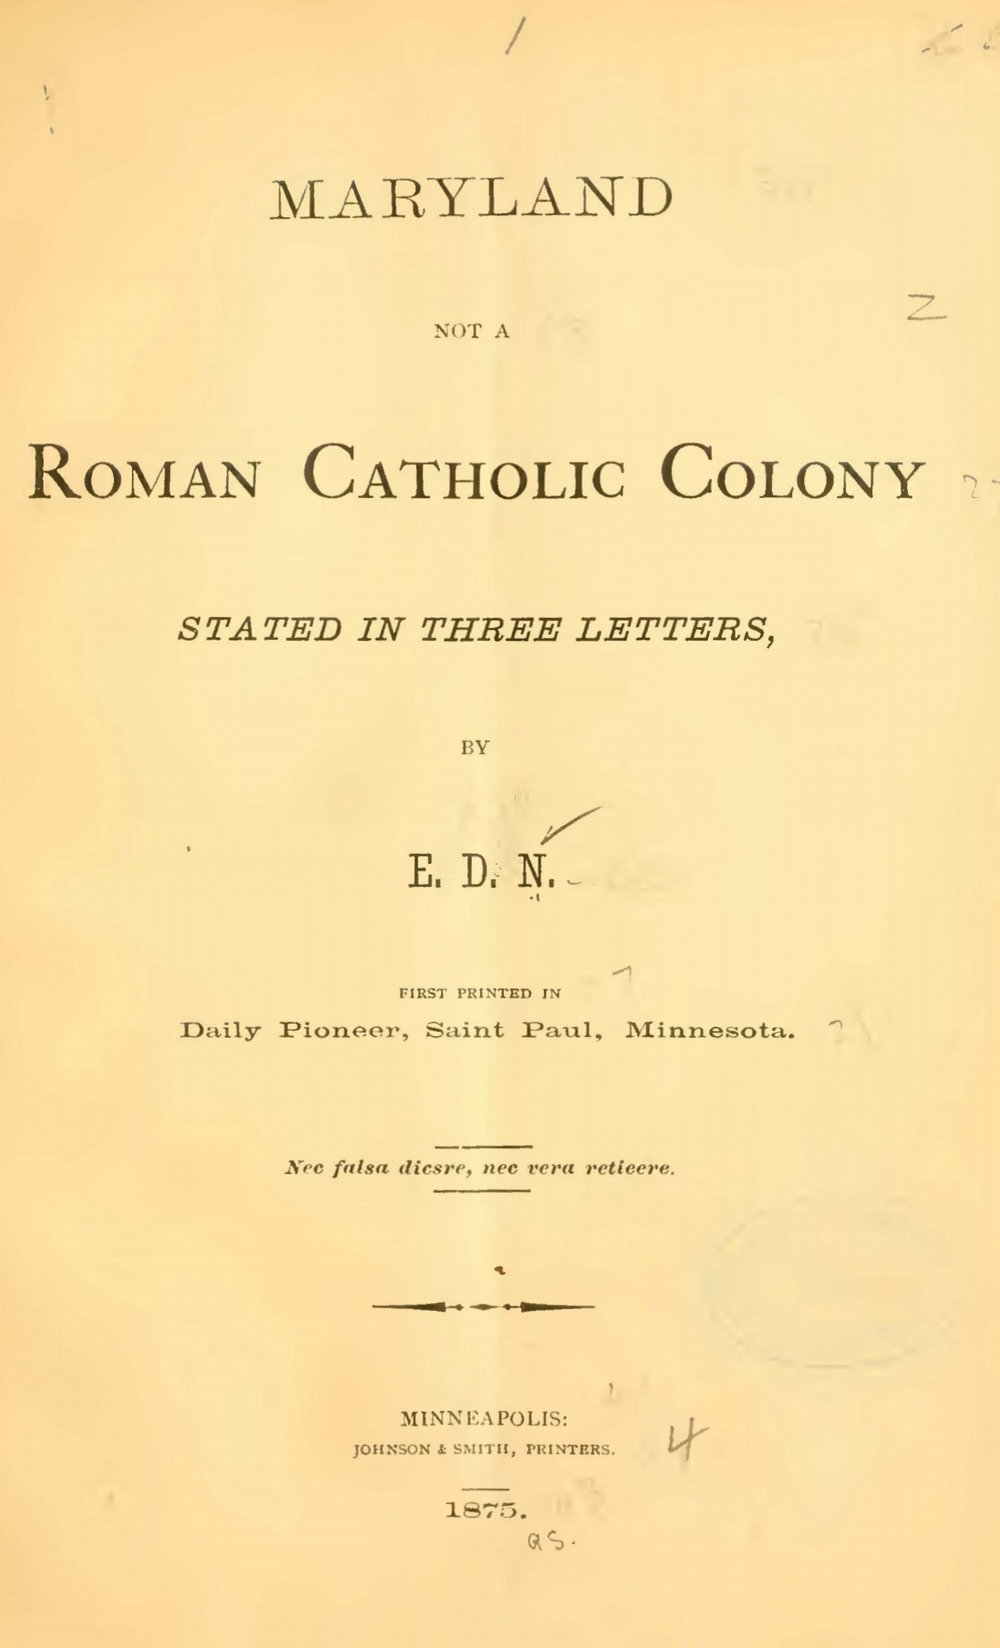 Neill, Edward Duffield, Maryland Not a Roman Catholic Colony Title Page.jpg